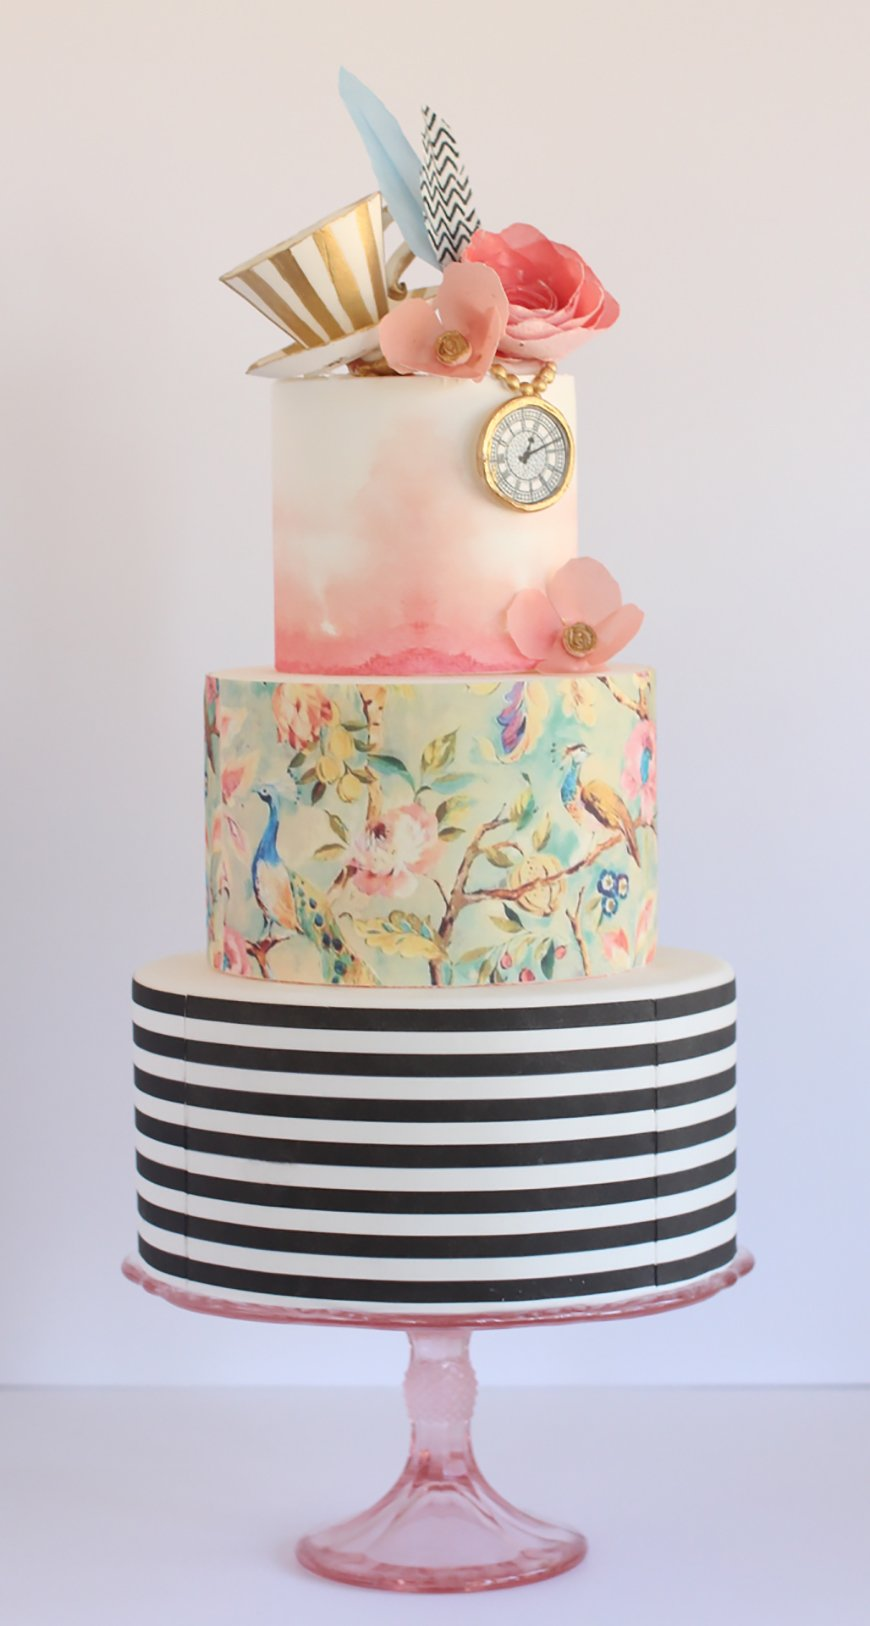 Hand-Painted Wedding Cakes You Have To See - Watercolour wedding cakes | CHWV